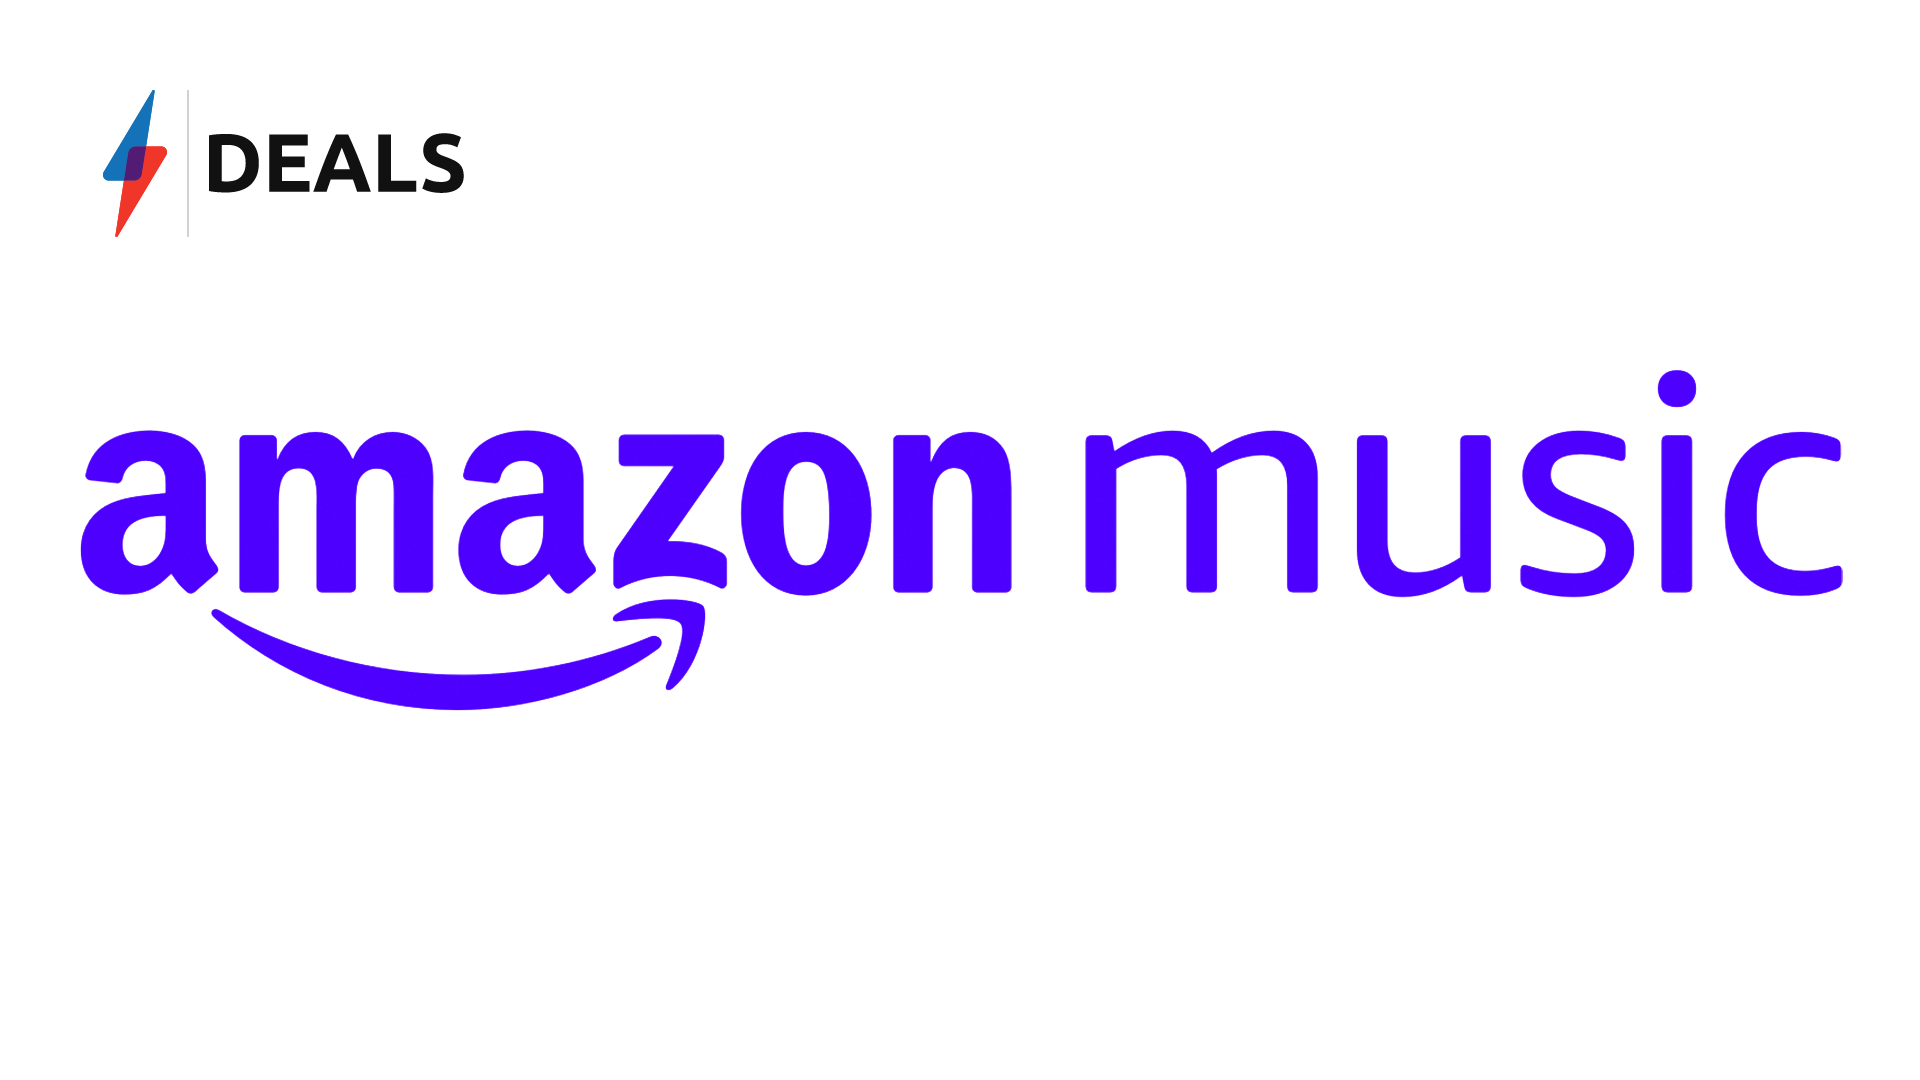 Did You Know You Can Pay Just 99p For Amazon Music Unlimited